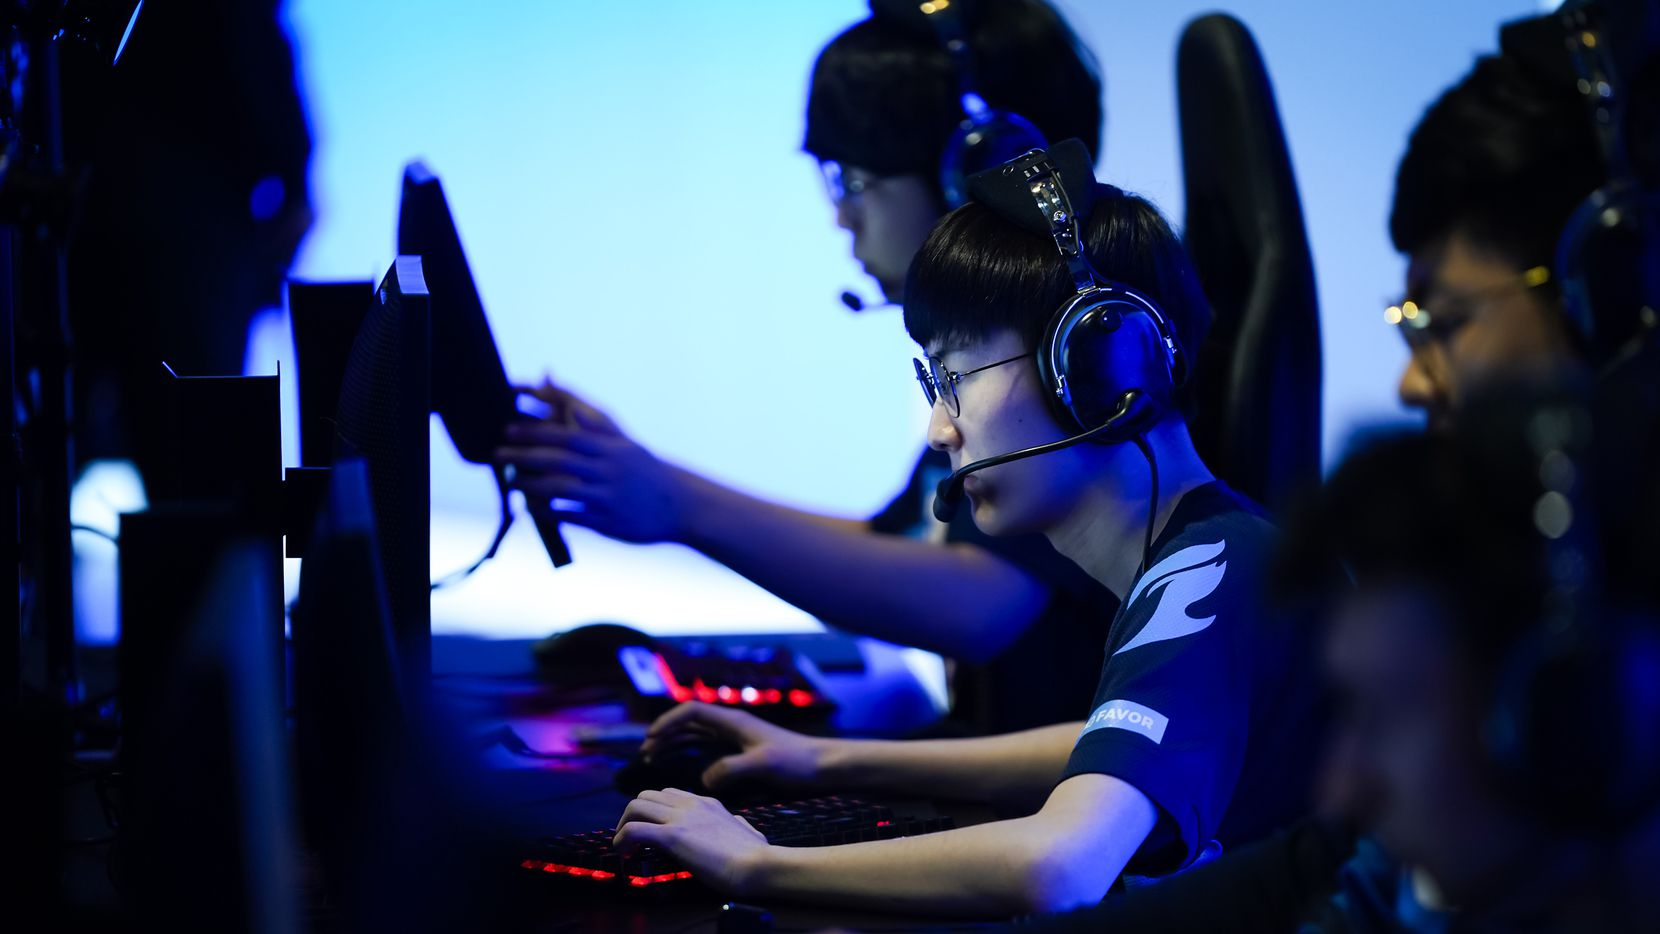 Jang ÒDecayÓ Gui-un of the Dallas Fuel prepares for the start of a Overwatch League match against the Los Angeles Valiant at the Arlington Esports Stadium on Saturday, Feb. 8, 2020, in Arlington.